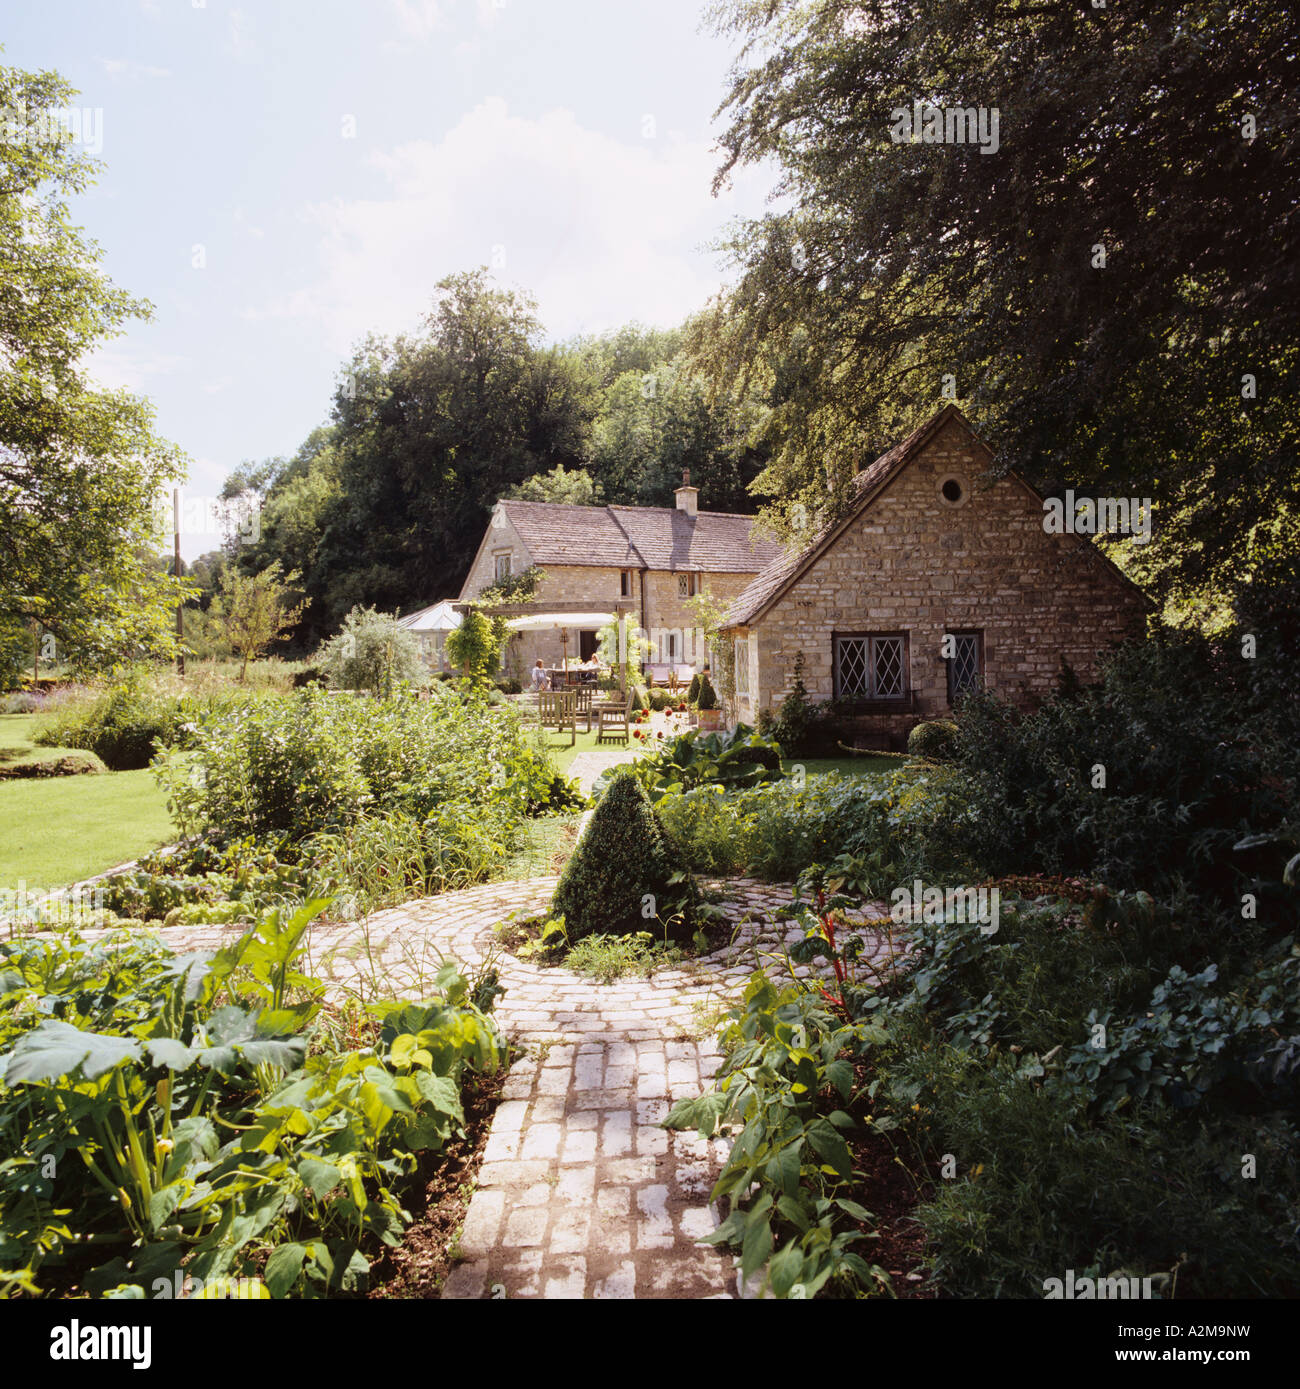 Cottage exterior in country garden with path - Stock Image